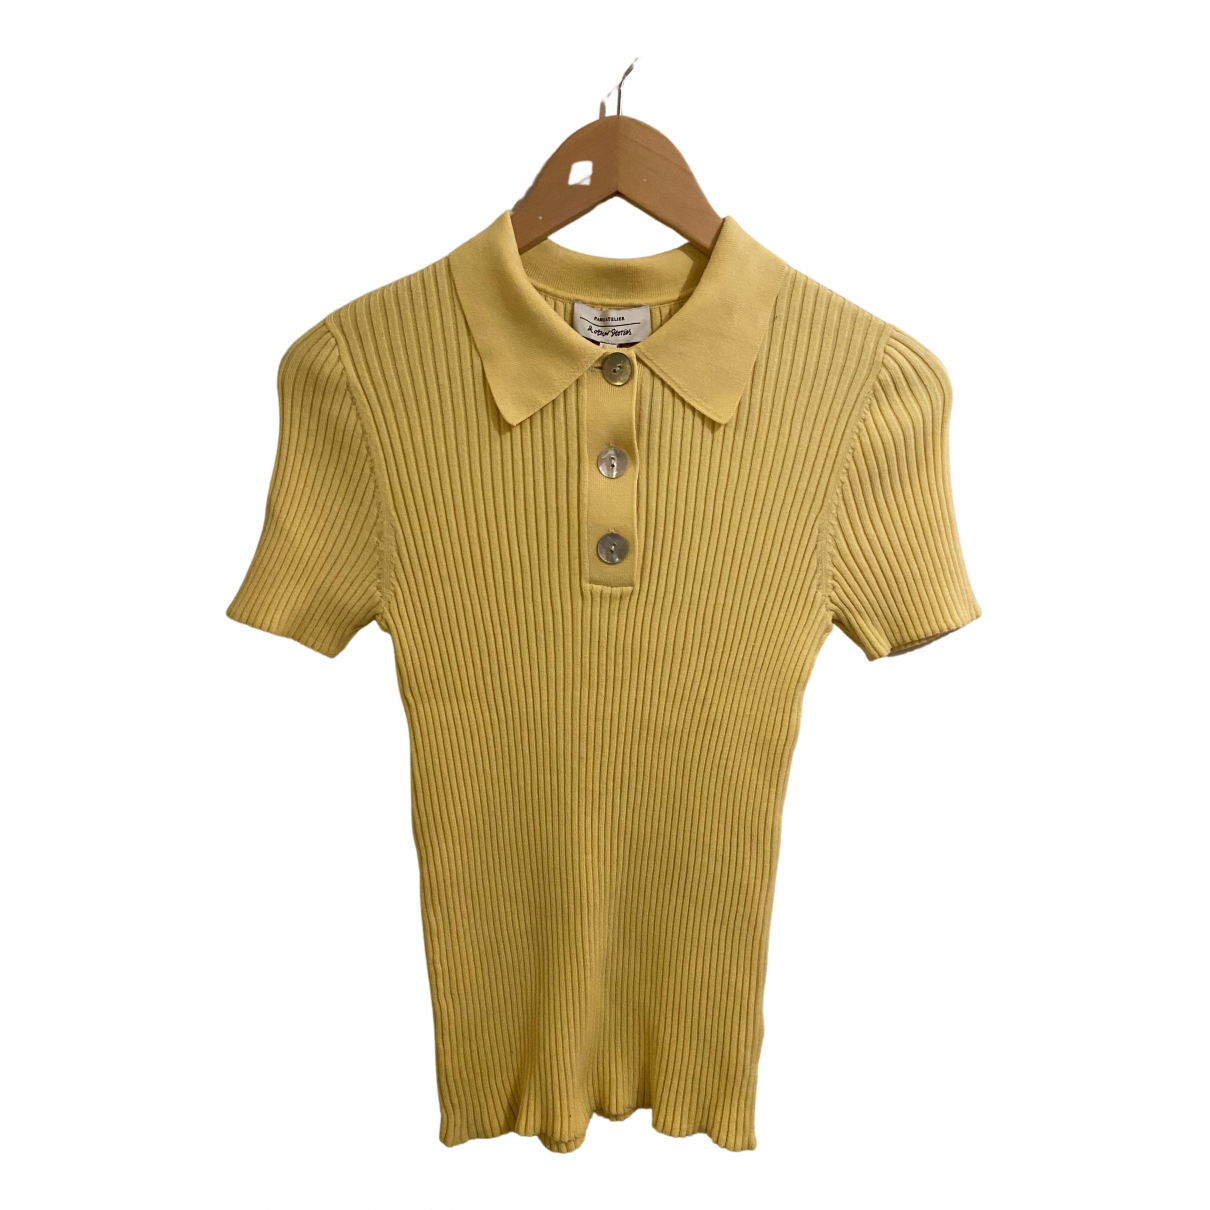 & Stories \N Yellow Cotton  top for Women S International